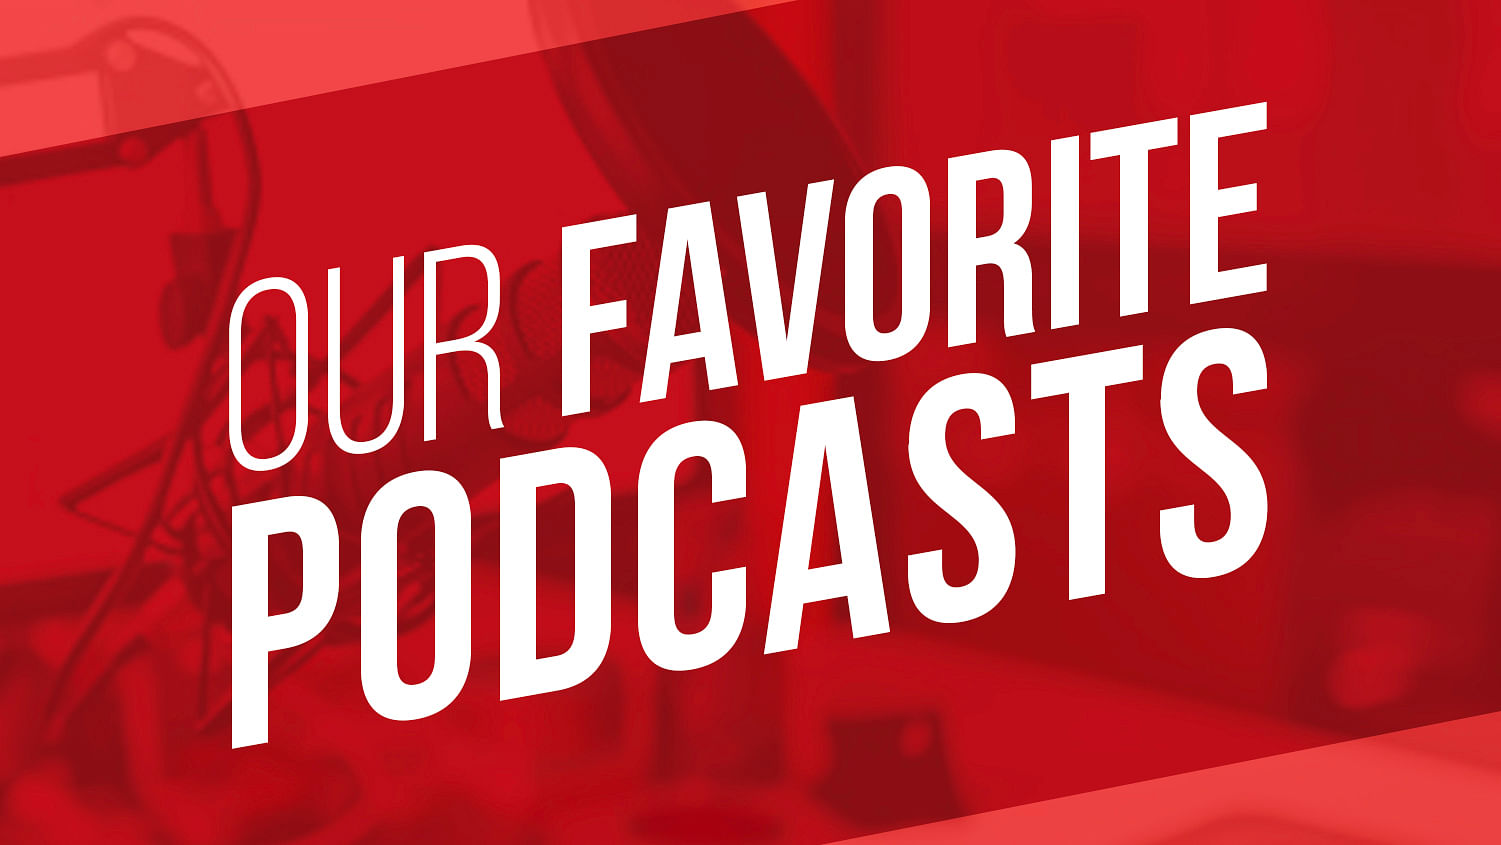 Our Favorite Magical Podcasts